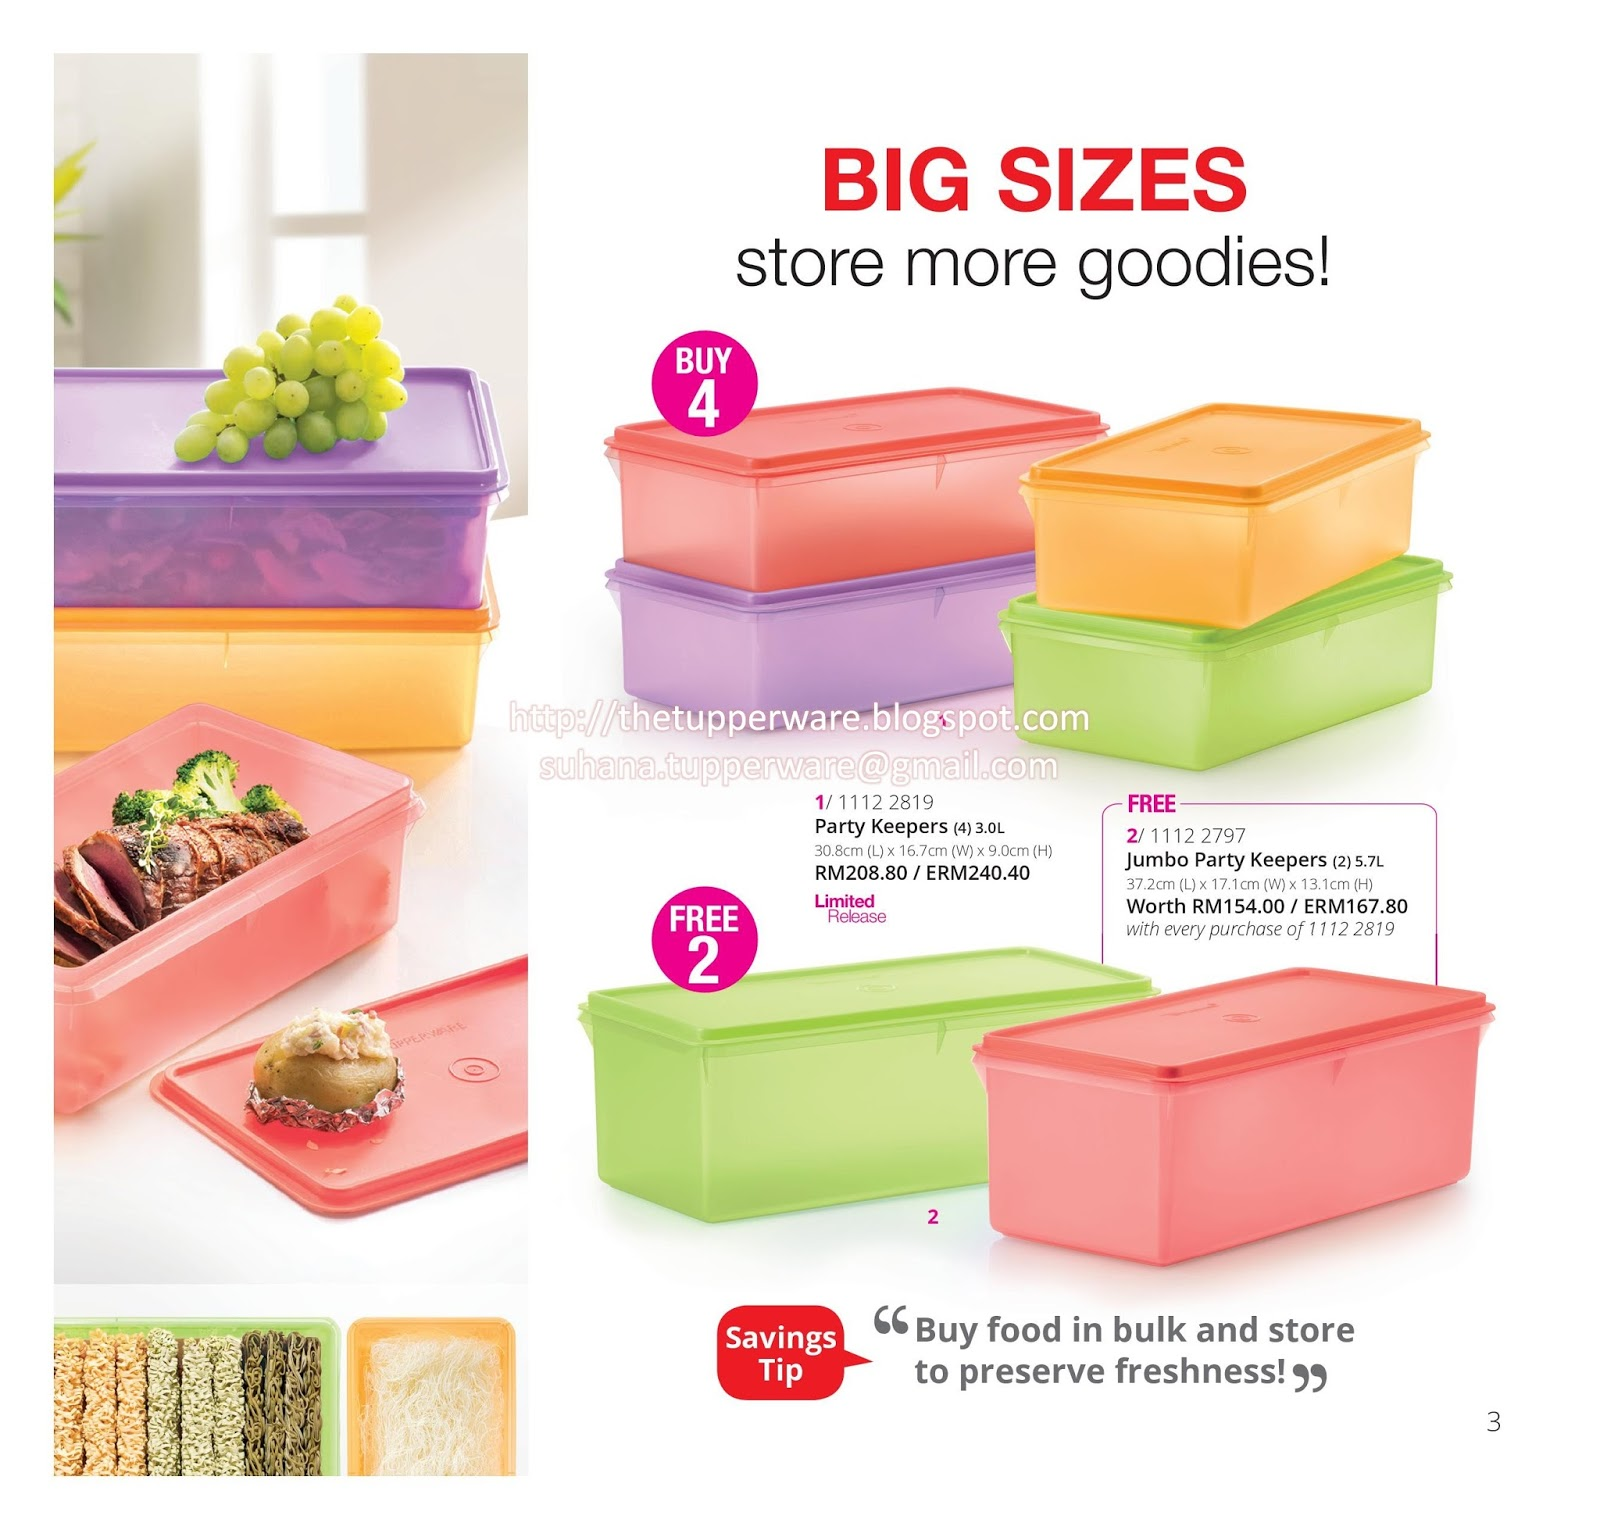 tupperware brands malaysia online catalogue collection business opportunity mini. Black Bedroom Furniture Sets. Home Design Ideas